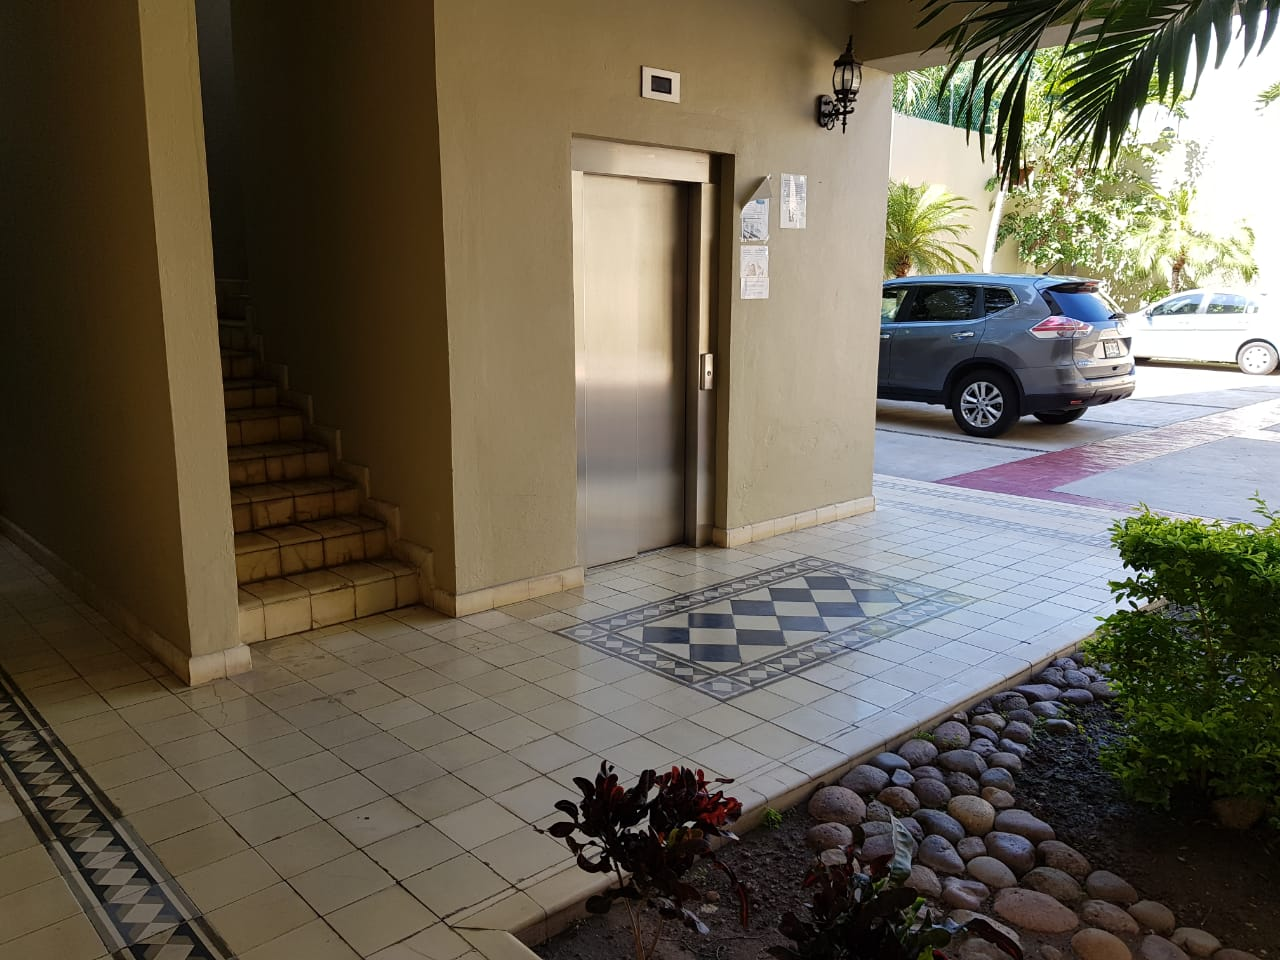 Elevator and stairs up to the condo.